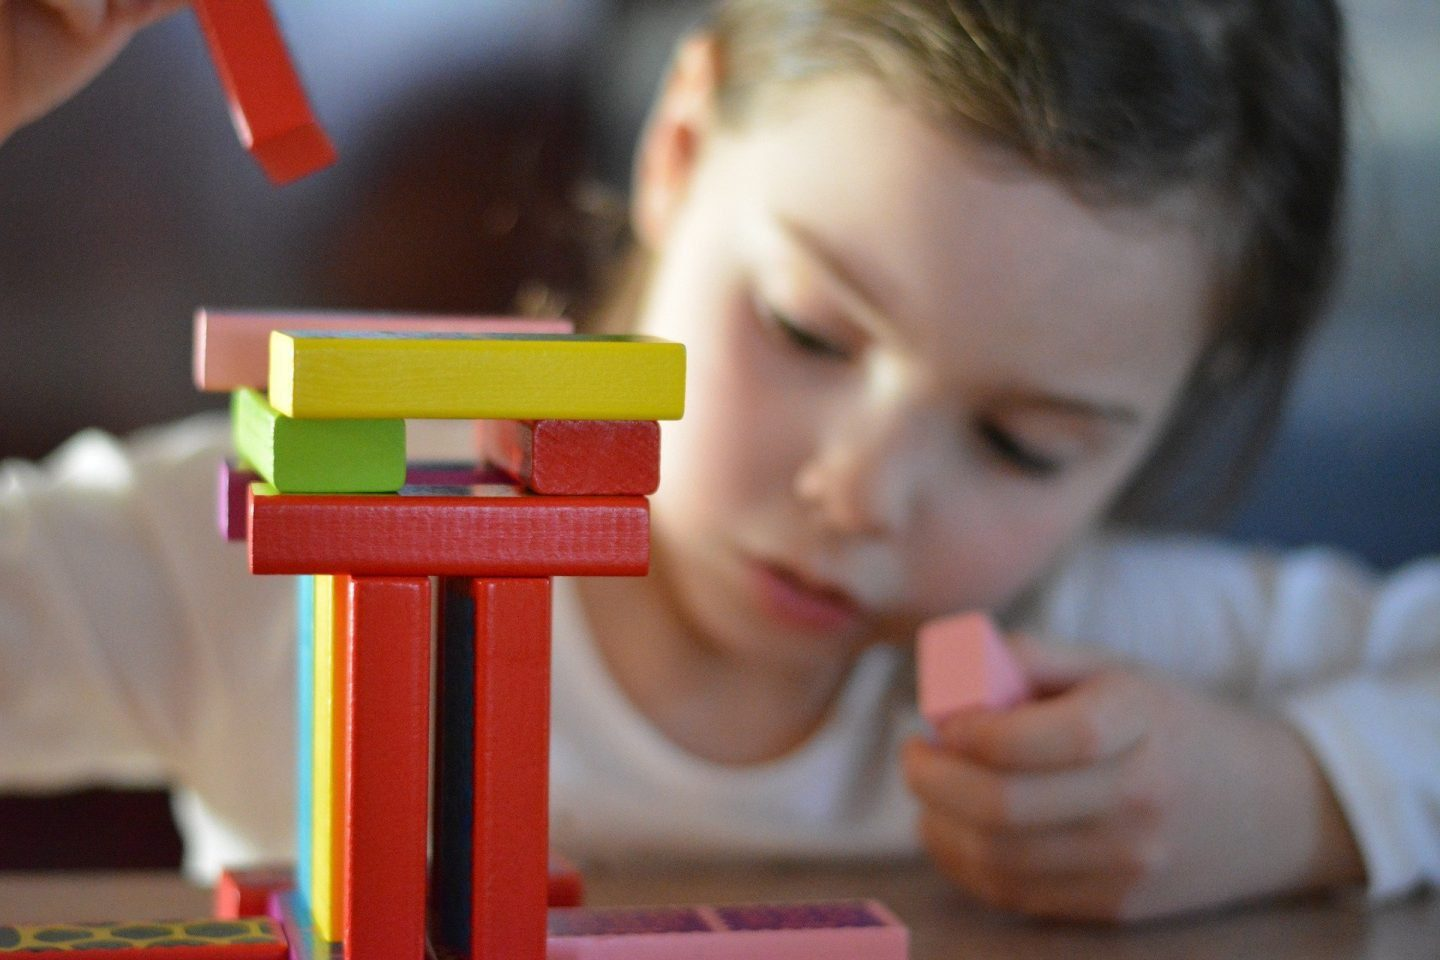 A girl making a tower with multicoloured wooden blocks